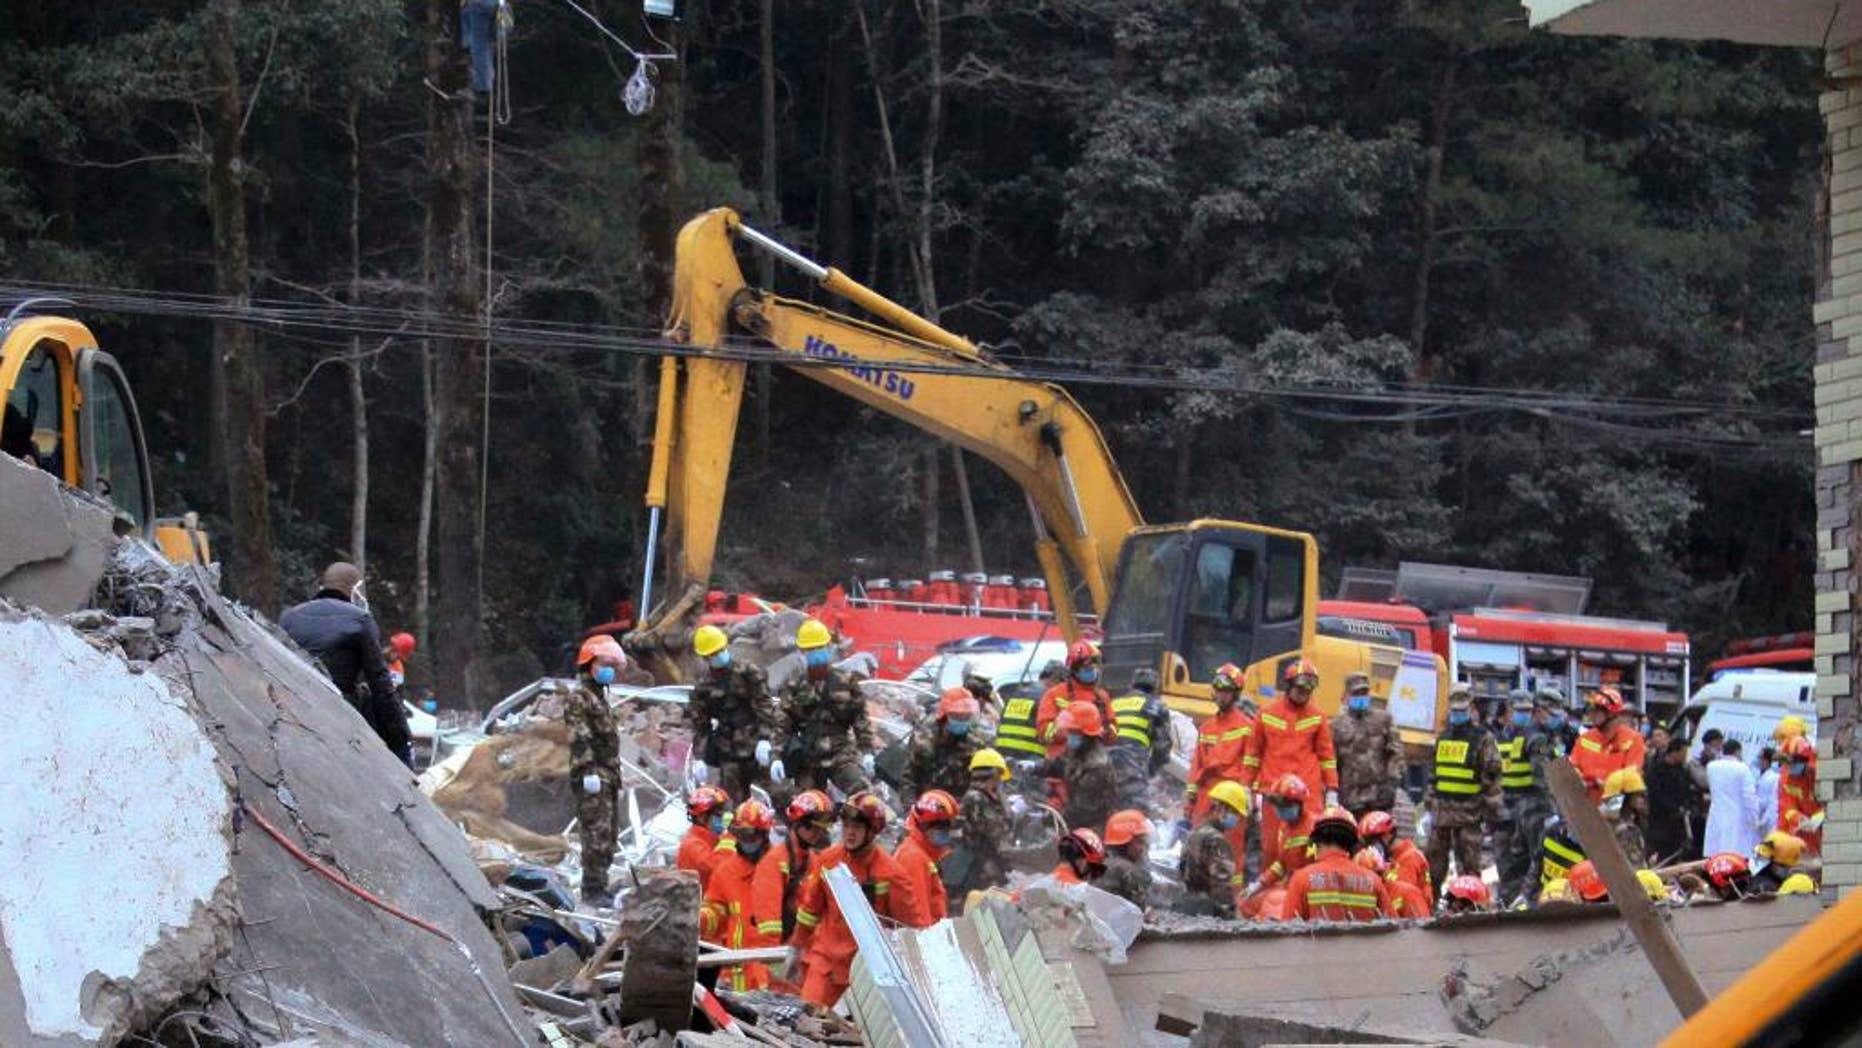 Rescuers search for survivors at the site of collapsed homes in Dahui village, Baizhangji township in Wencheng county in east China's Zhejiang province, Thursday, Feb. 2, 2017. Several people were buried in the collapse of a group of homes in eastern China on Thursday morning, a Chinese rescue official and state media reported. (Chinatopix via AP)